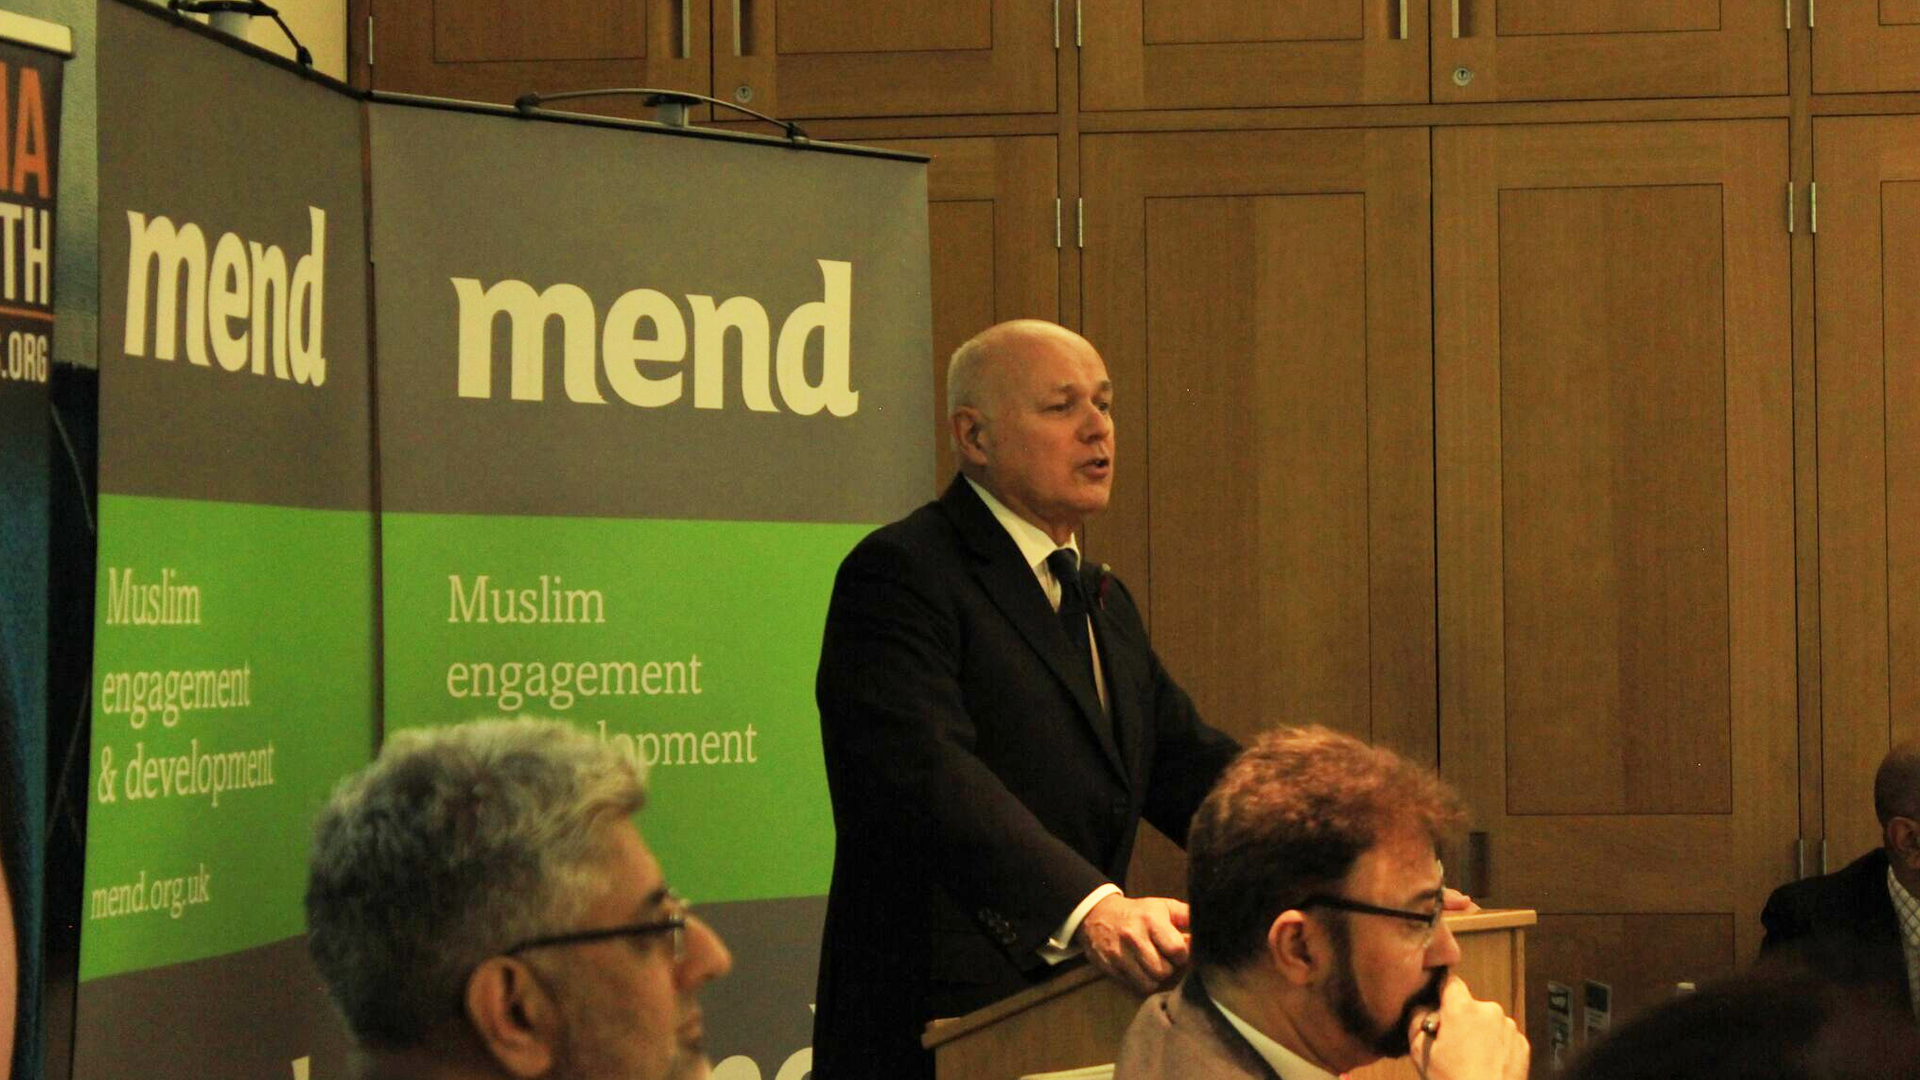 MEND responds to criticism from Iain Duncan Smith